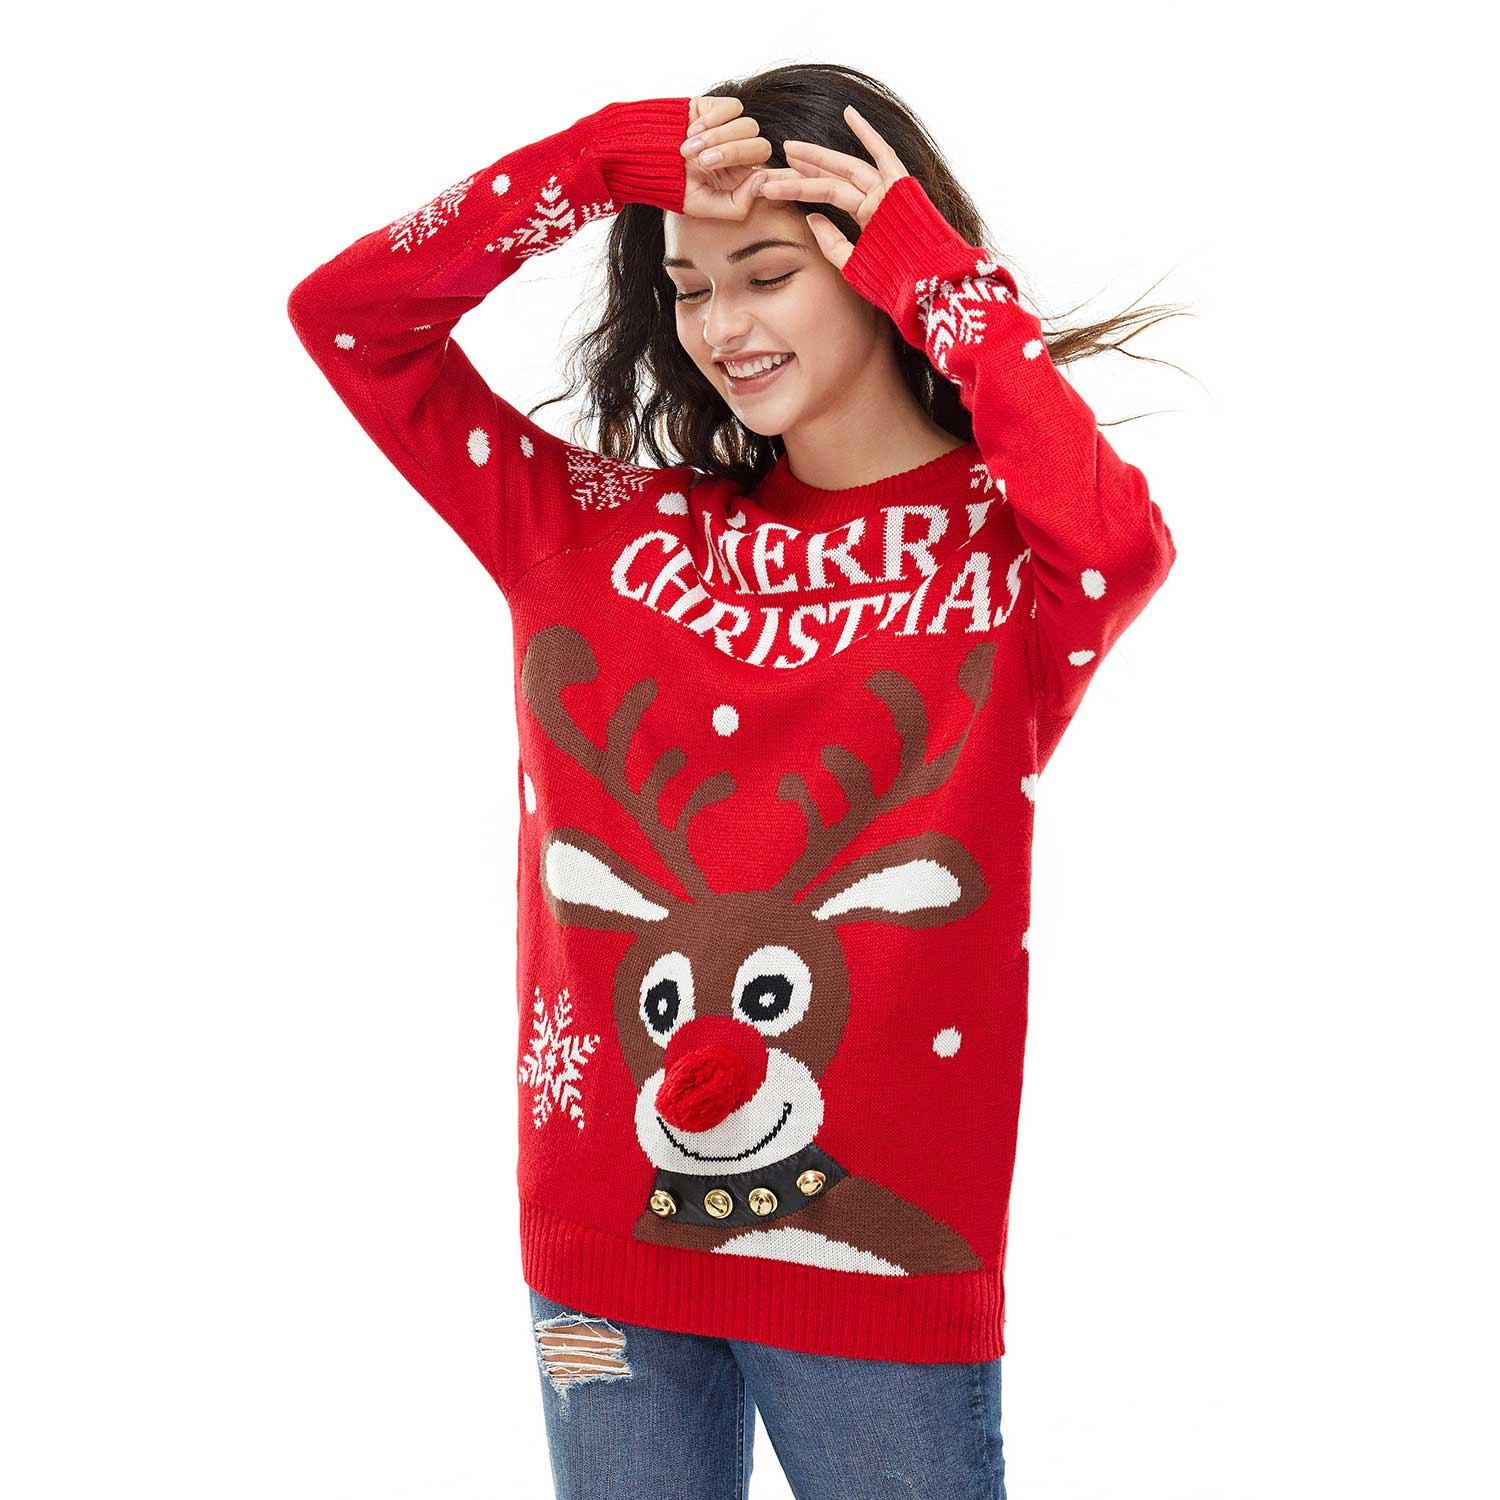 Jingle Bells Rudolph Women S Funny Ugly Christmas Sweater